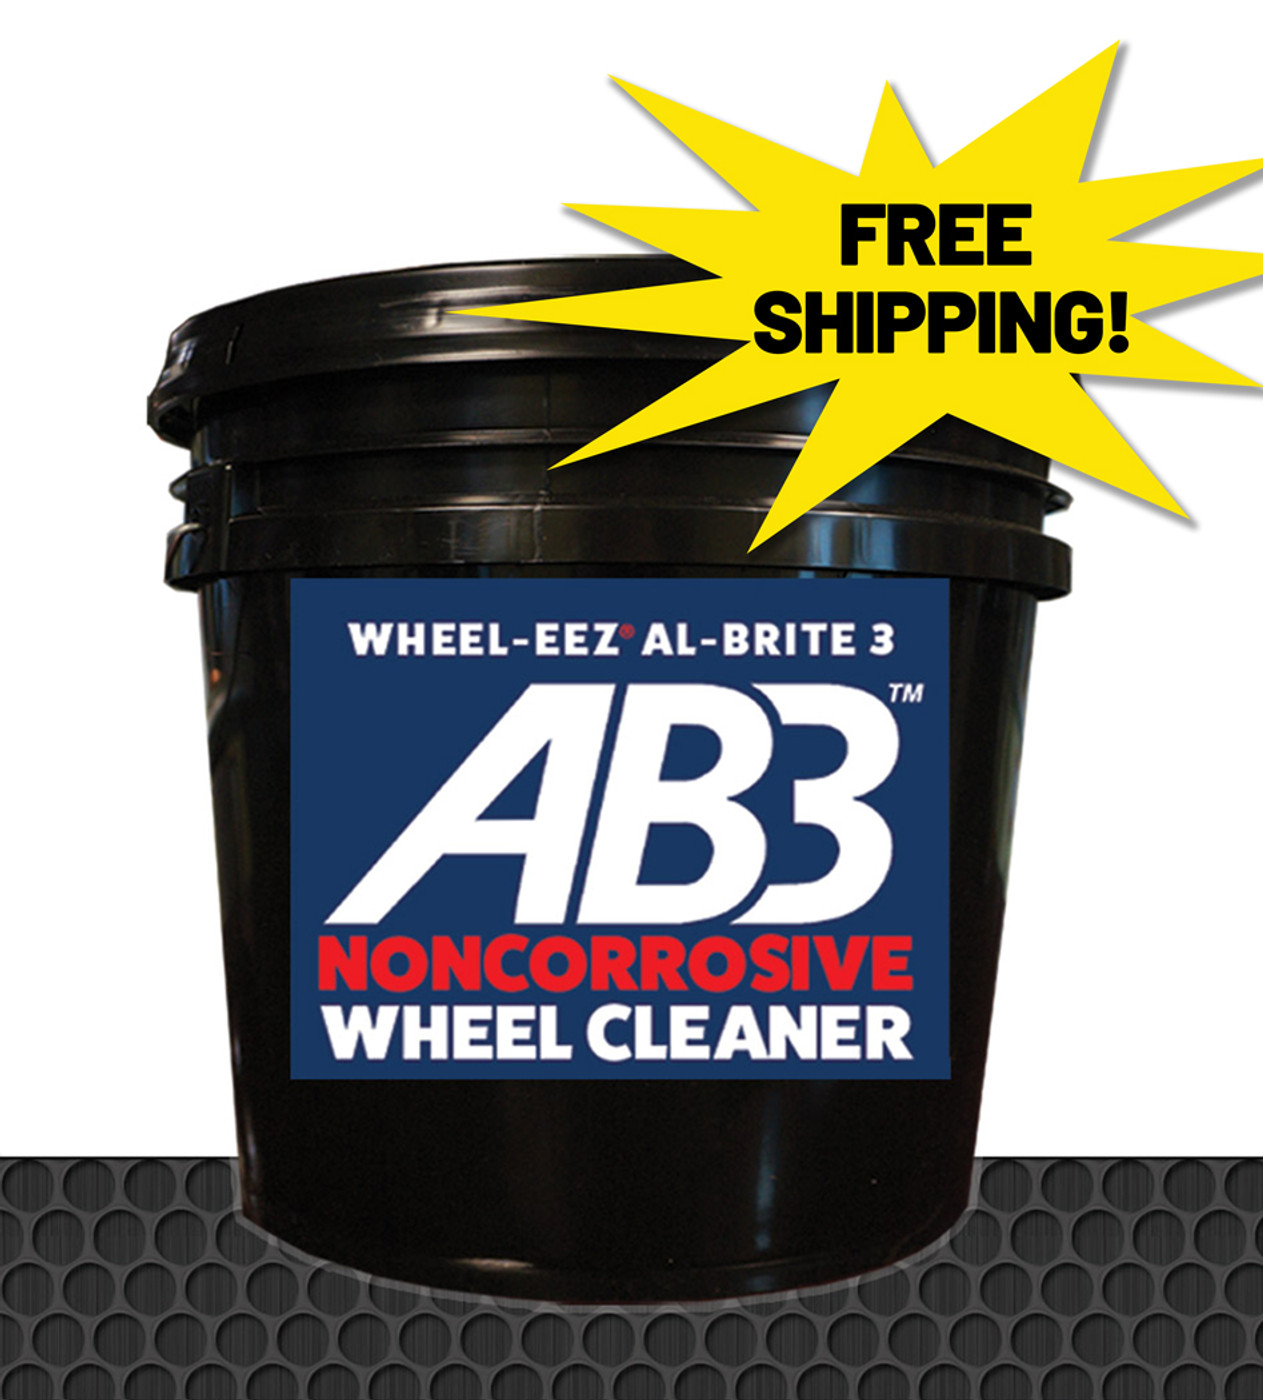 Use it just like a traditional wheel cleaner - spray on by hand or with automatic applicator and rinse off!   This product may be diluted to meet specific Tunnel and In-Bay needs.  Replacing corrosive wheel cleaners with our noncorrosive formula is better for the environment,  And it's also better for your bays - it's easier on car wash floors, conveyors, and fixtures.   Highly Concentrated • Use Straight / Mix to 55 Gallons						 • Use Straight - 64:1 to 120:1  Self Serve 240:1					 • Mix into 55 gallon drum - then use 8:1 to 17:1 and higher.